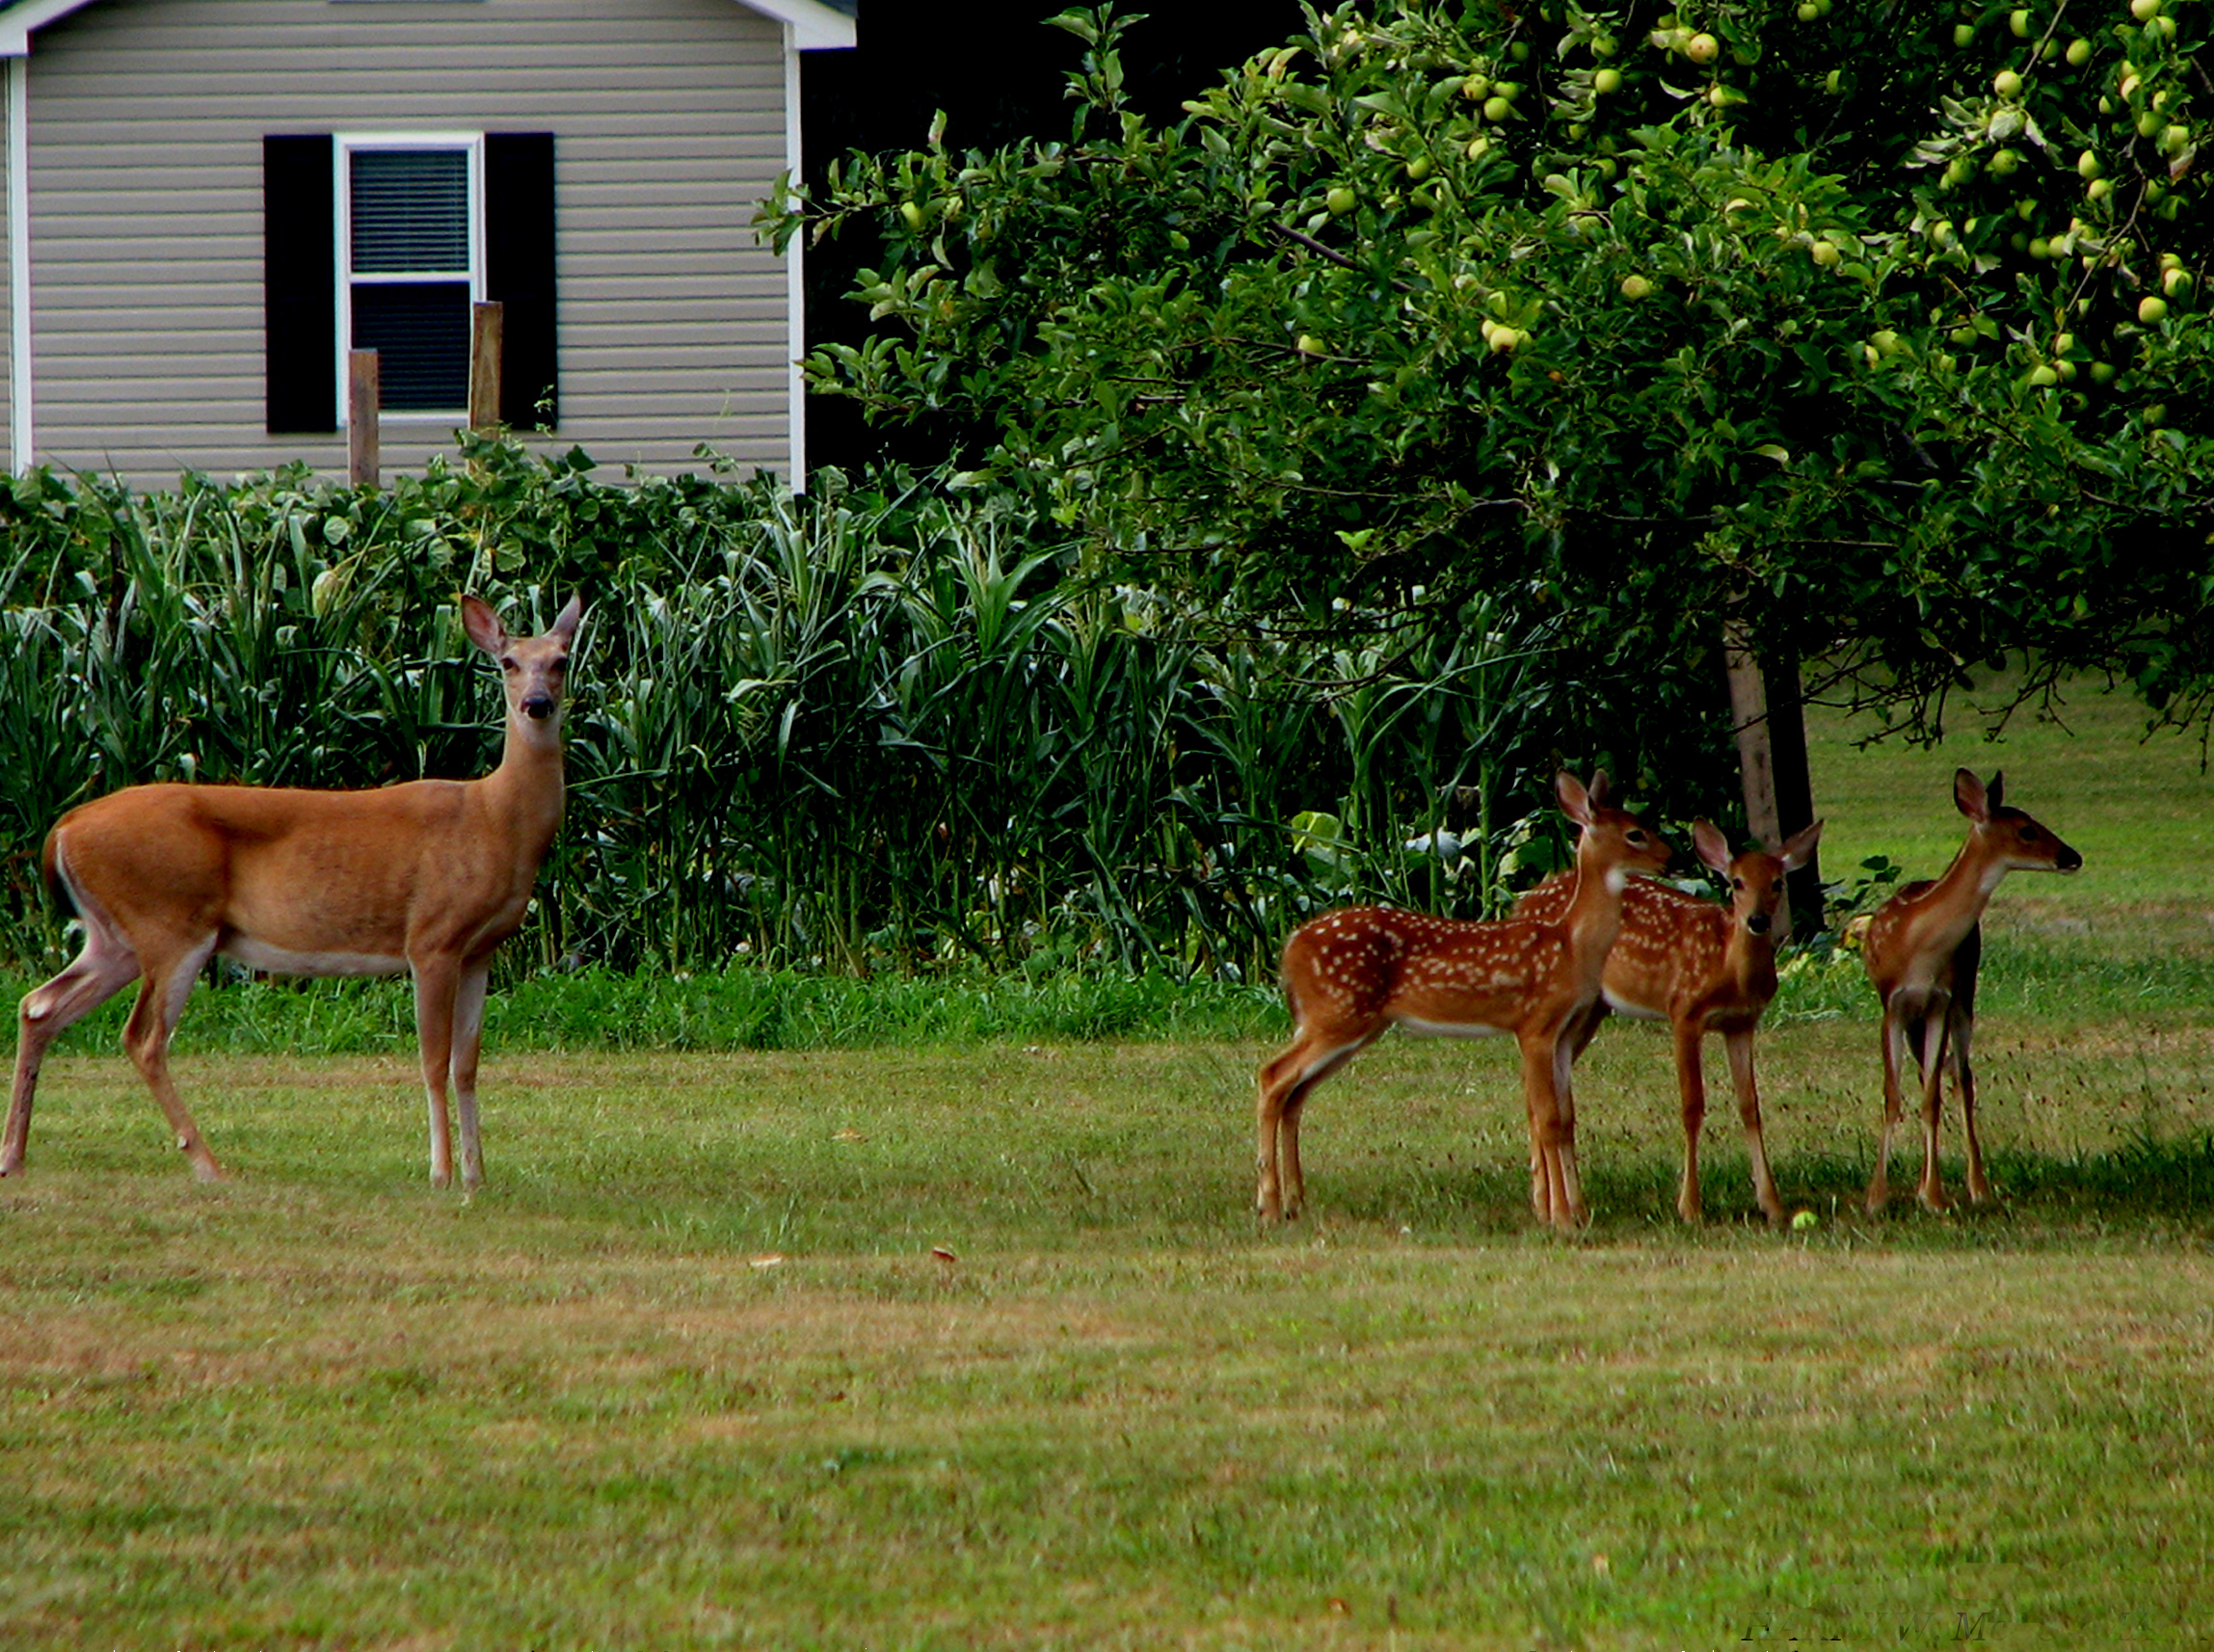 Watching deer out the window can be fun, until they devour your garden.